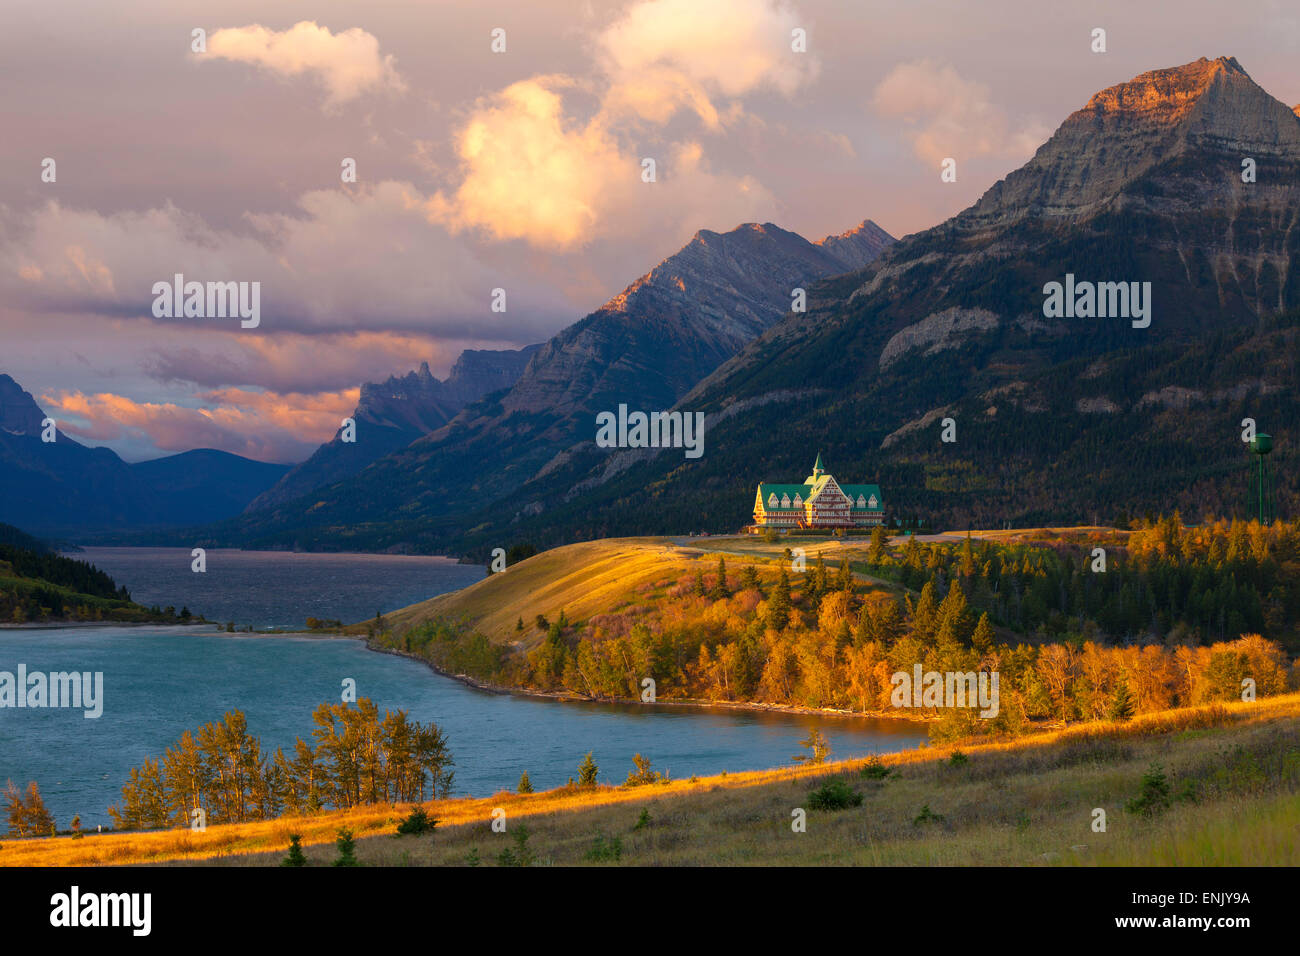 The Prince of Wales Hotel at Sunrise, Waterton Lakes National Park, Alberta, Canada, North America - Stock Image